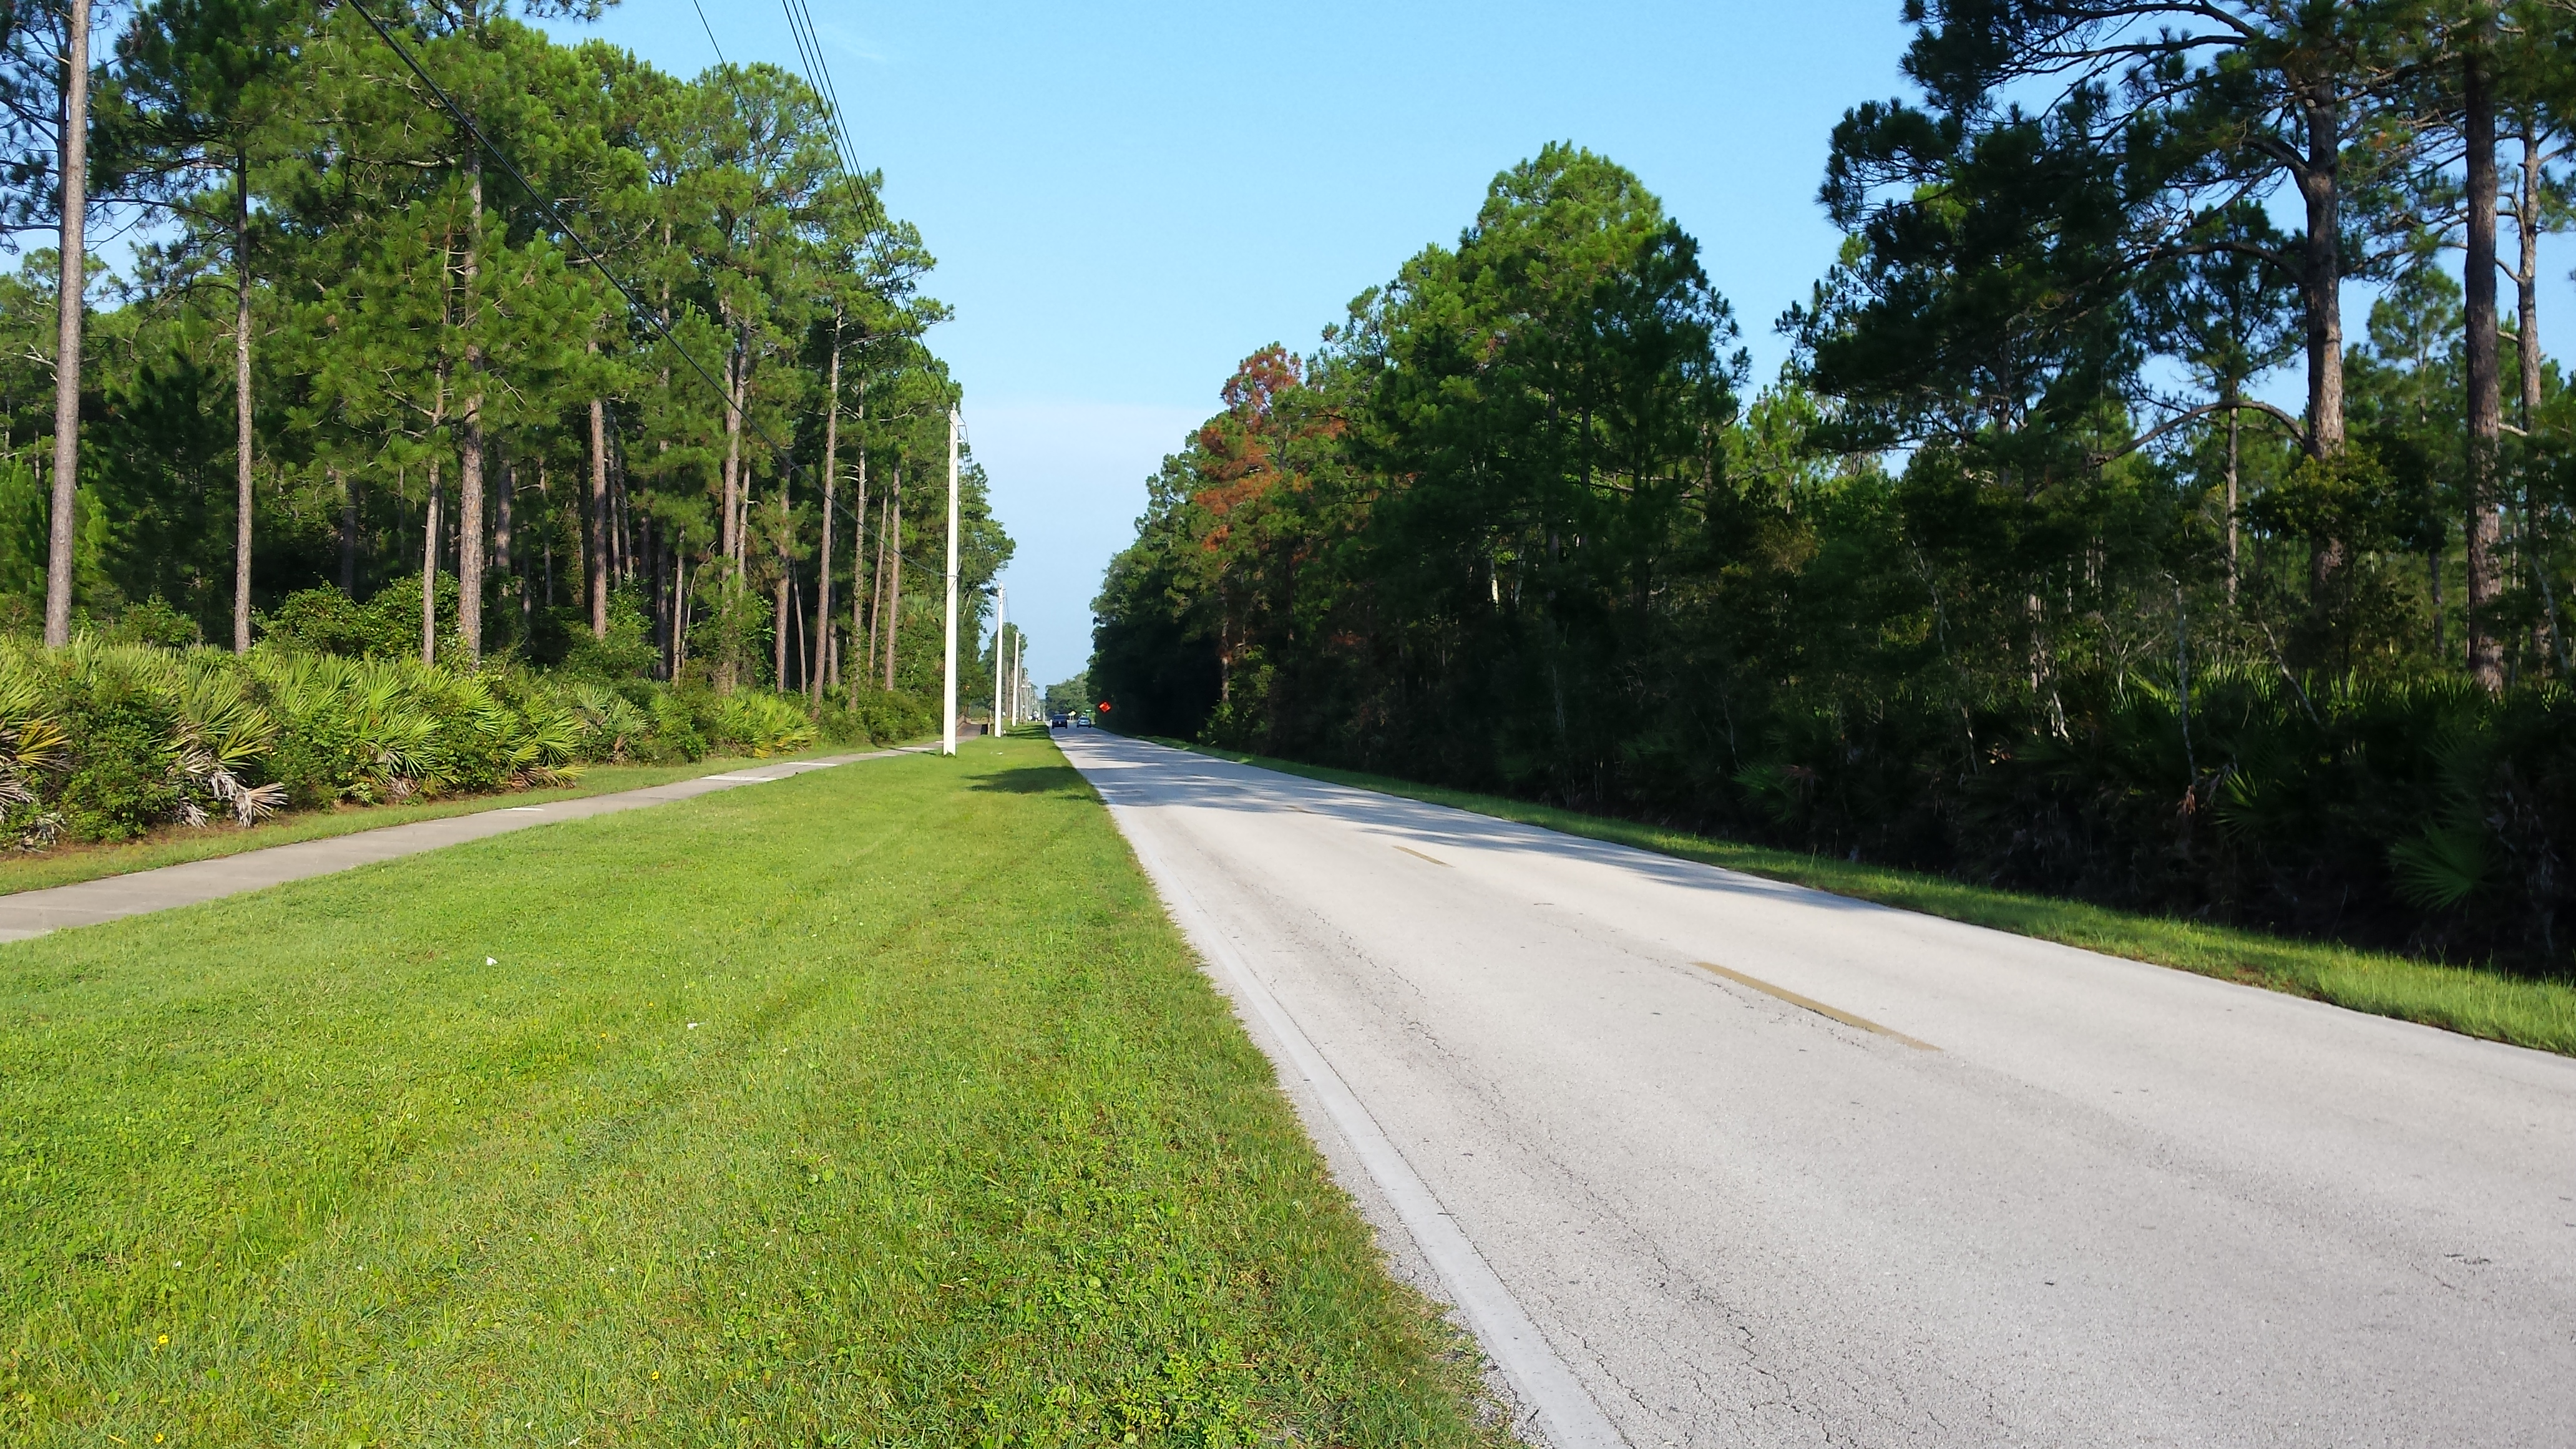 A photo of woodlawn road on a sunny day surrounded by green grass and pine trees